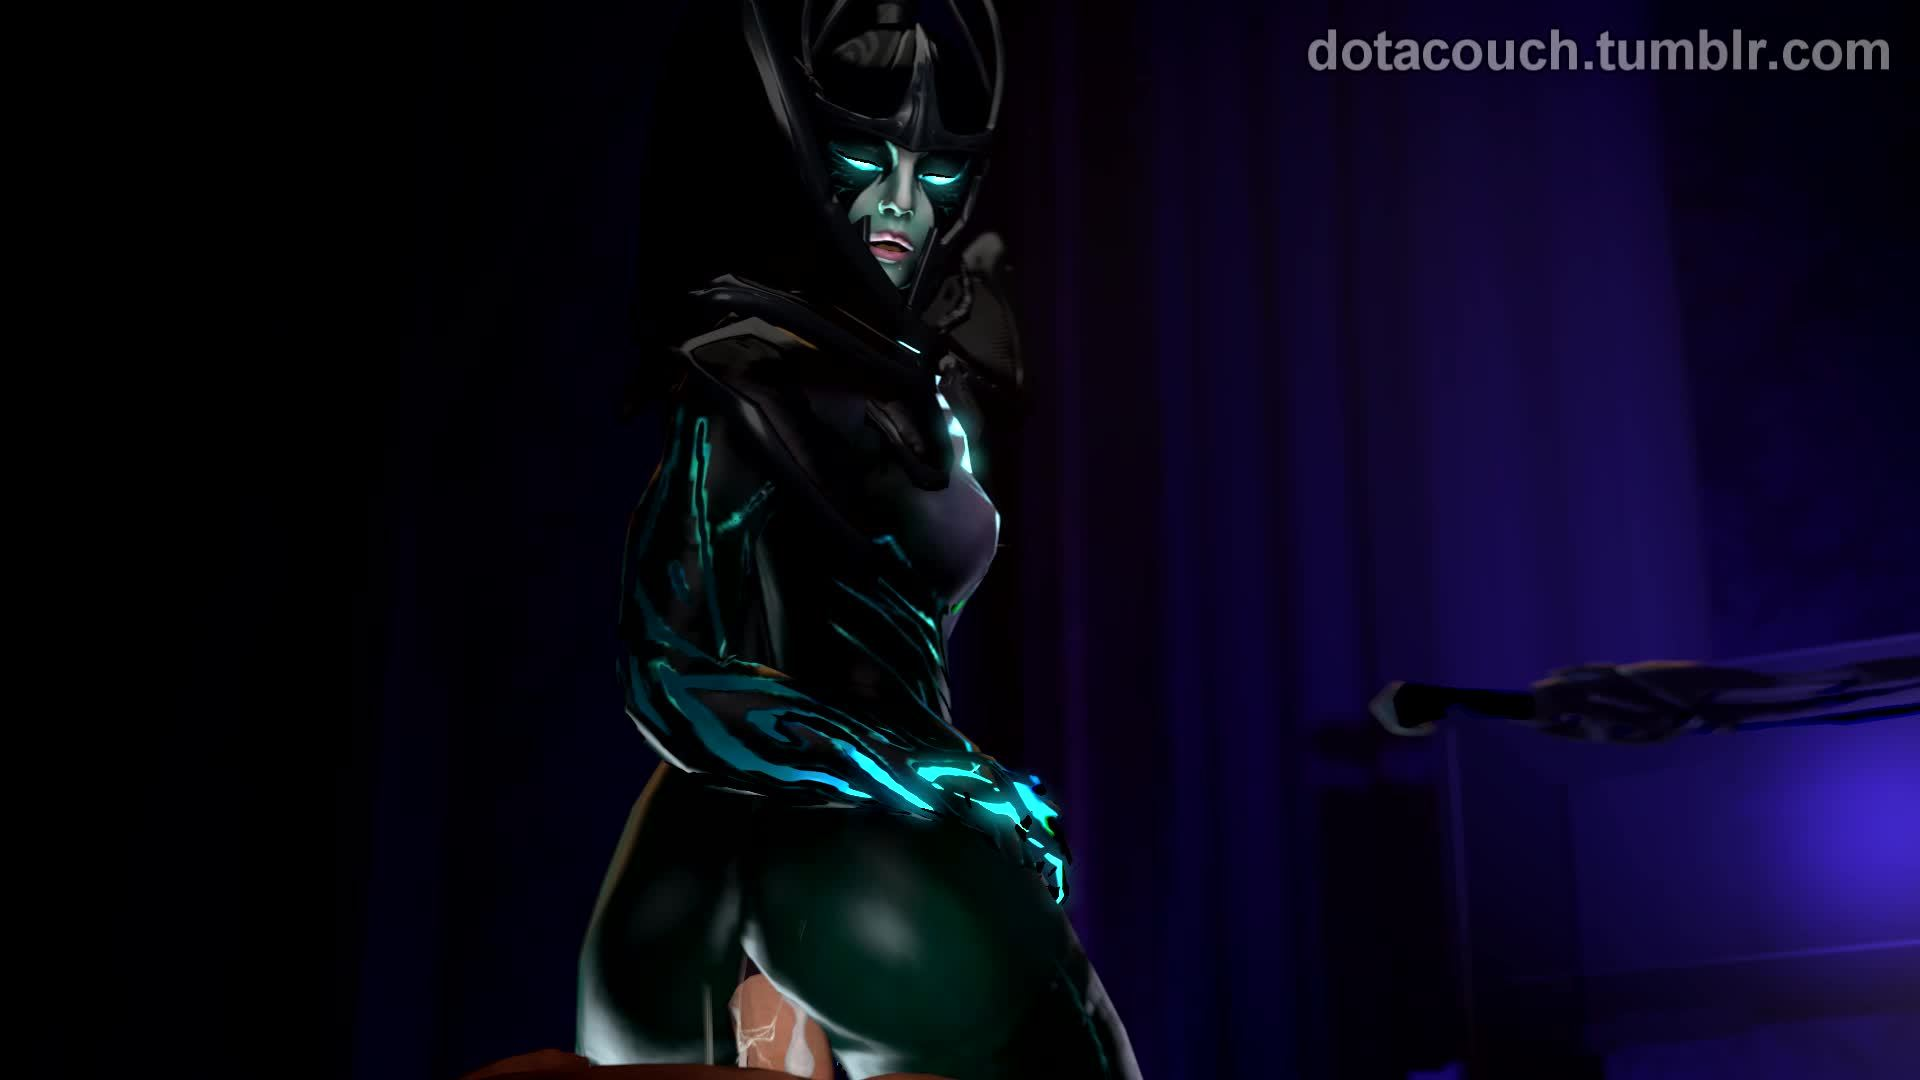 Dota2sex wallpaper sexy pictures